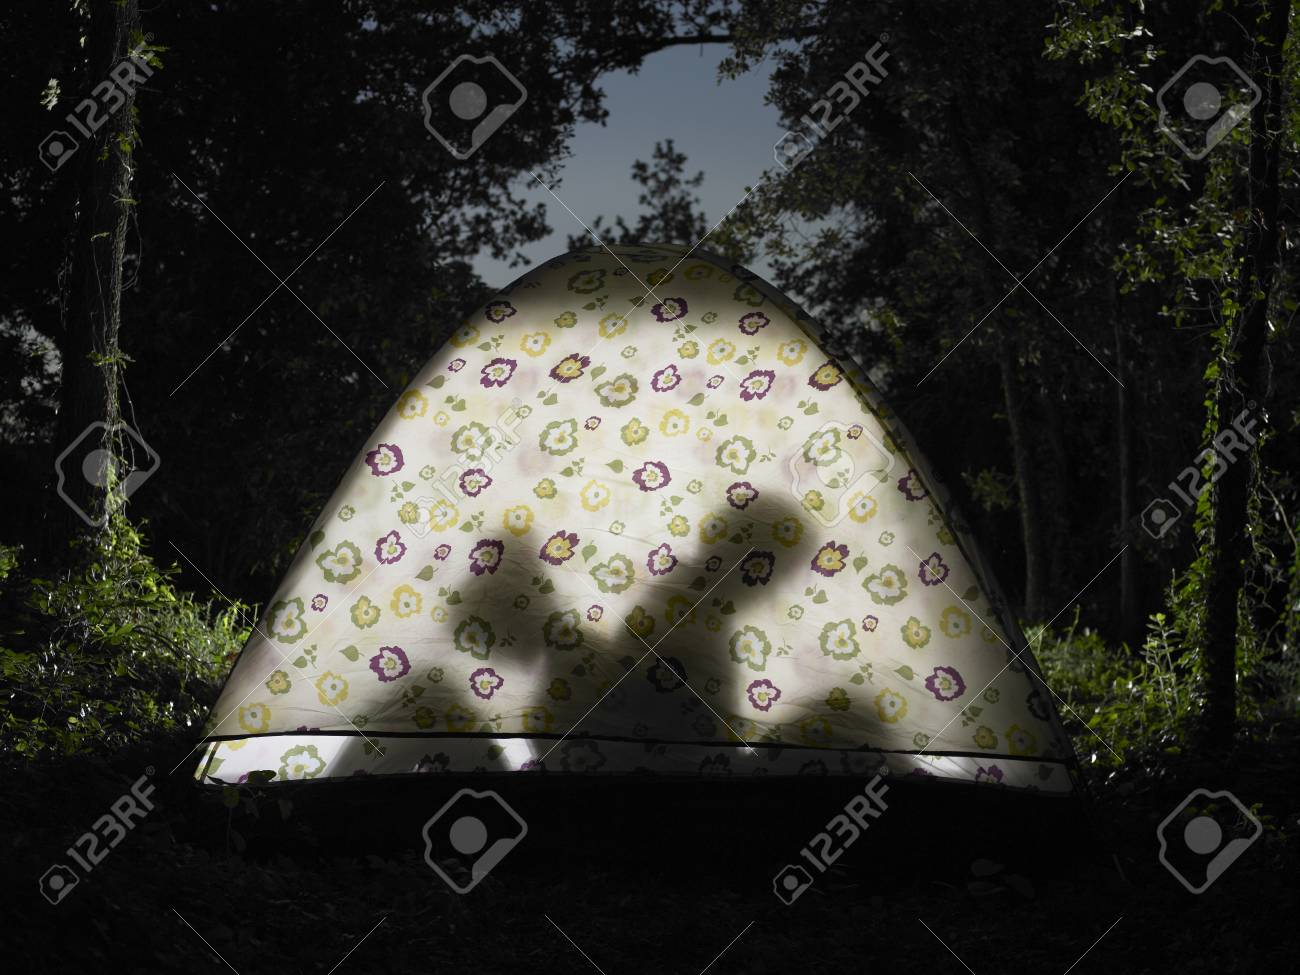 Couple sitting in tent silhouette view Stock Photo - 84022412 & Couple Sitting In Tent Silhouette View Stock Photo Picture And ...